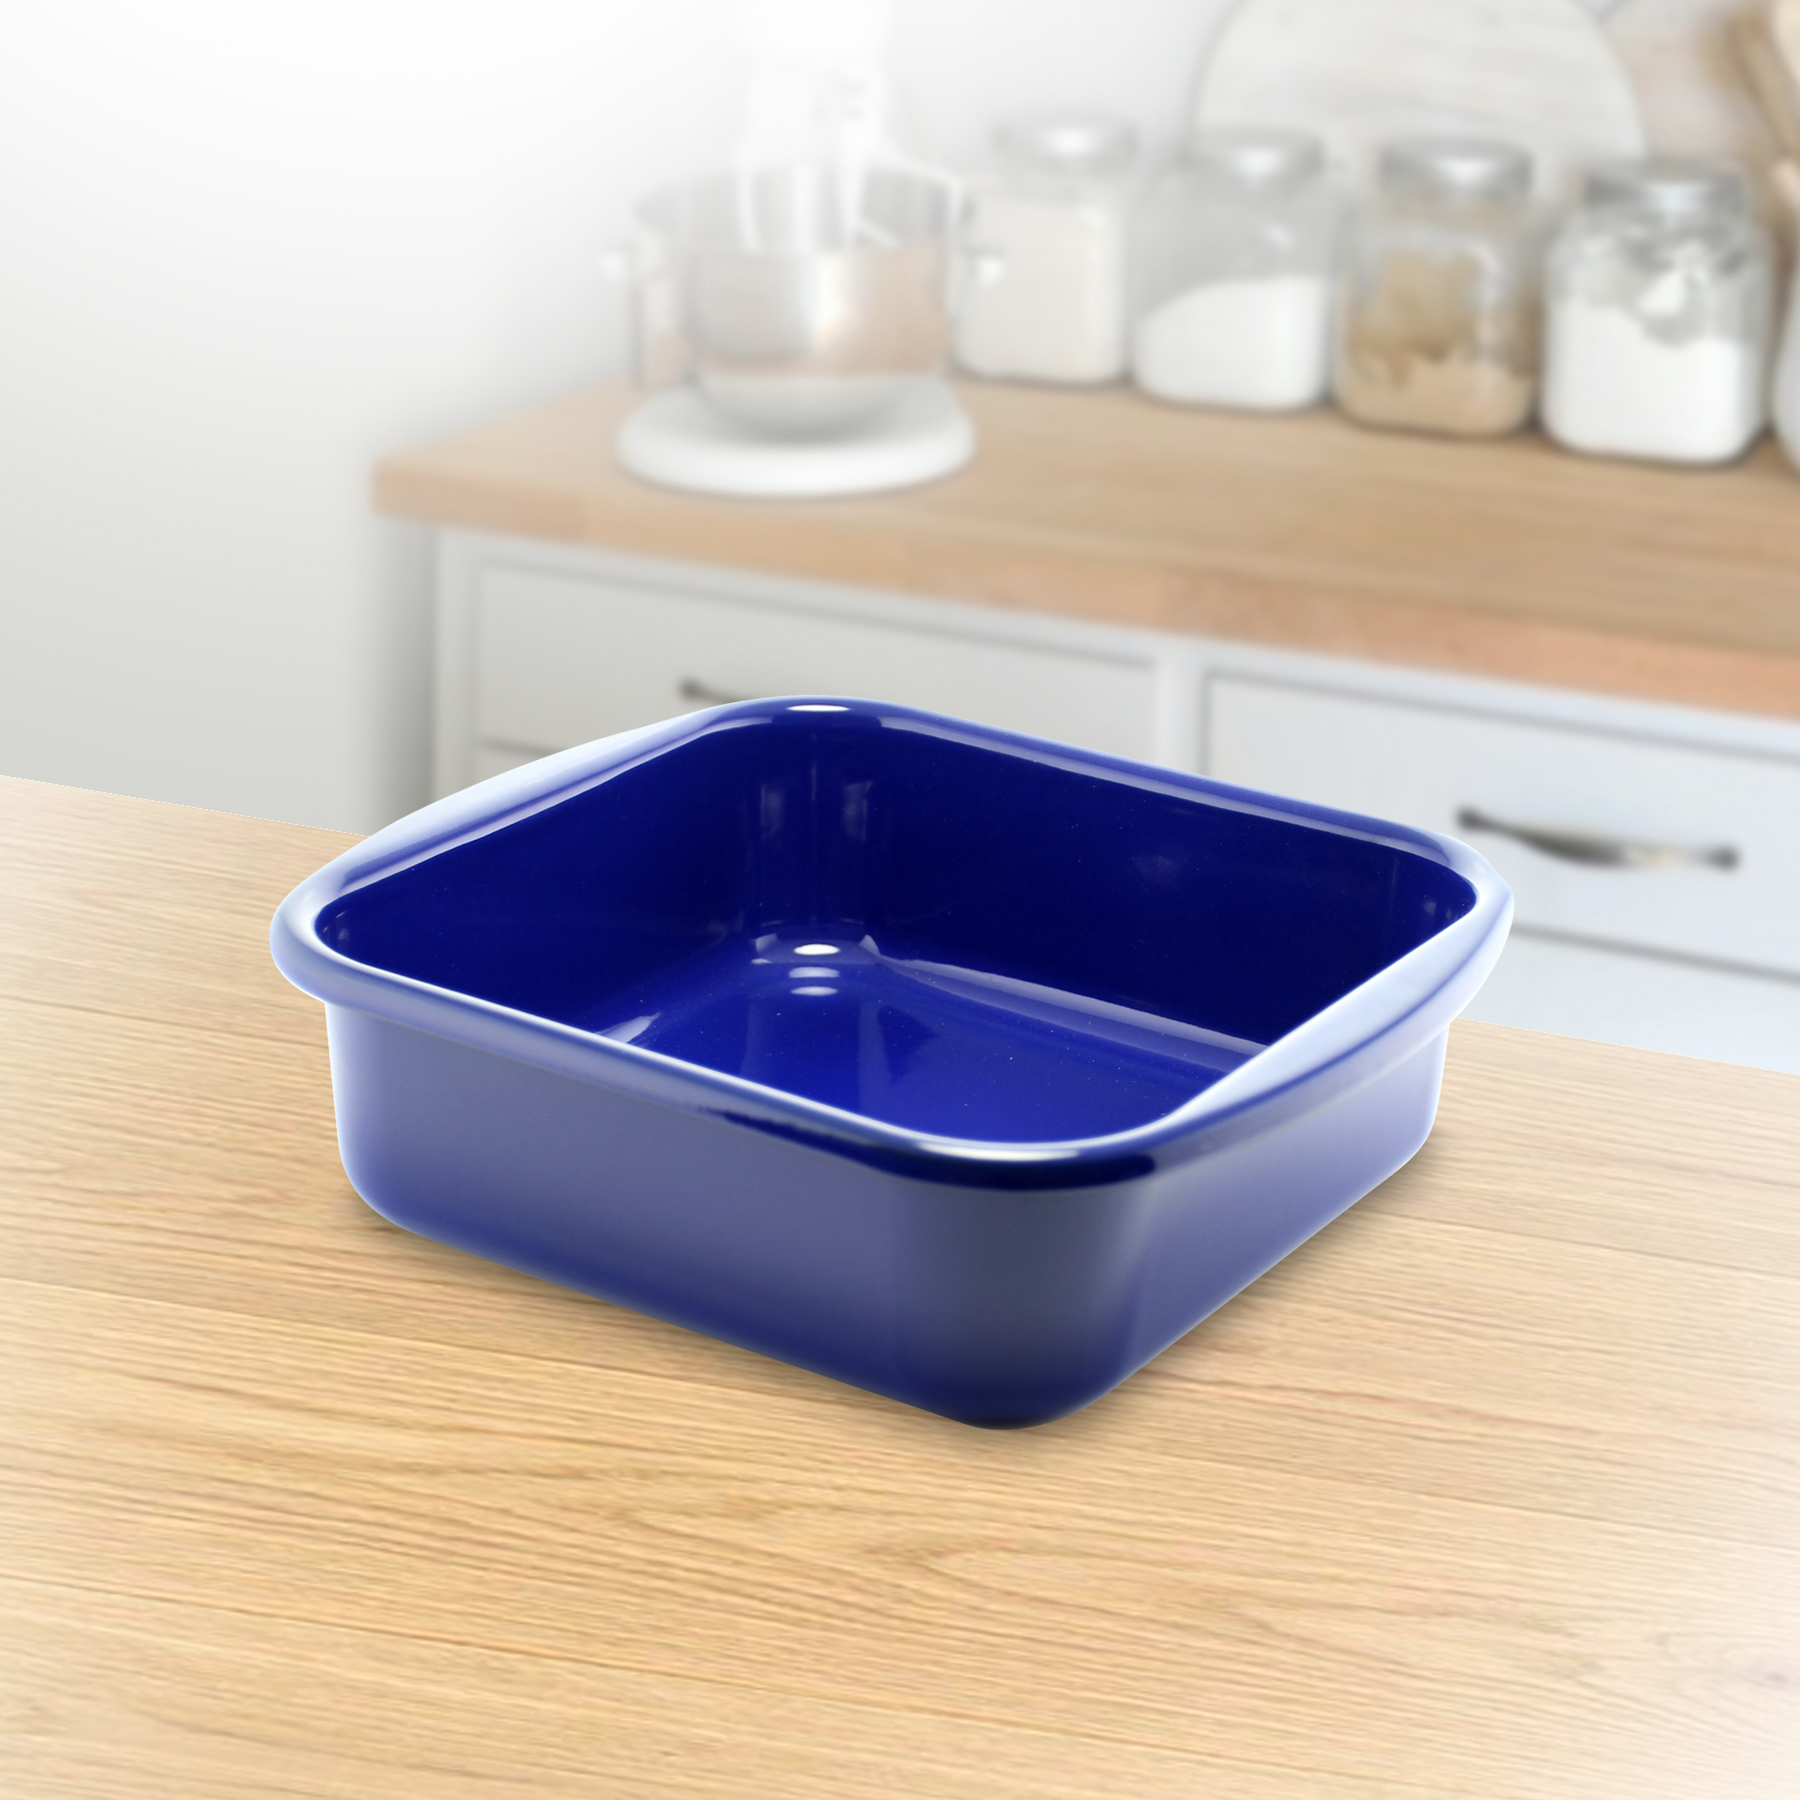 "8"" x 8"" square baker is a necessity in any kitchen for brownies, breads or small casseroles. RIESS is a family owned factory that has been producing kitchenware since 1550"